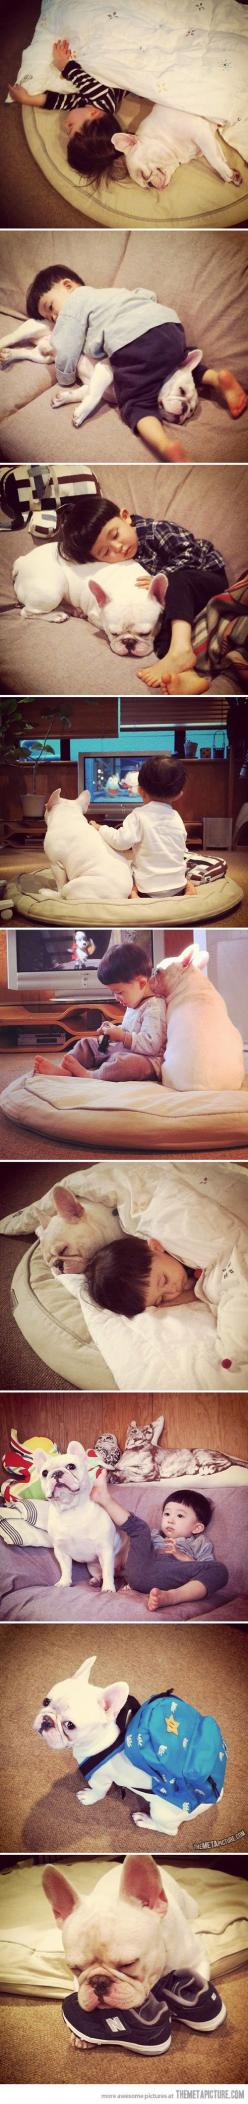 Aww: Best Friends, Dogs, Puppy, Sweetest Friendship, Boy, Kid, Animal